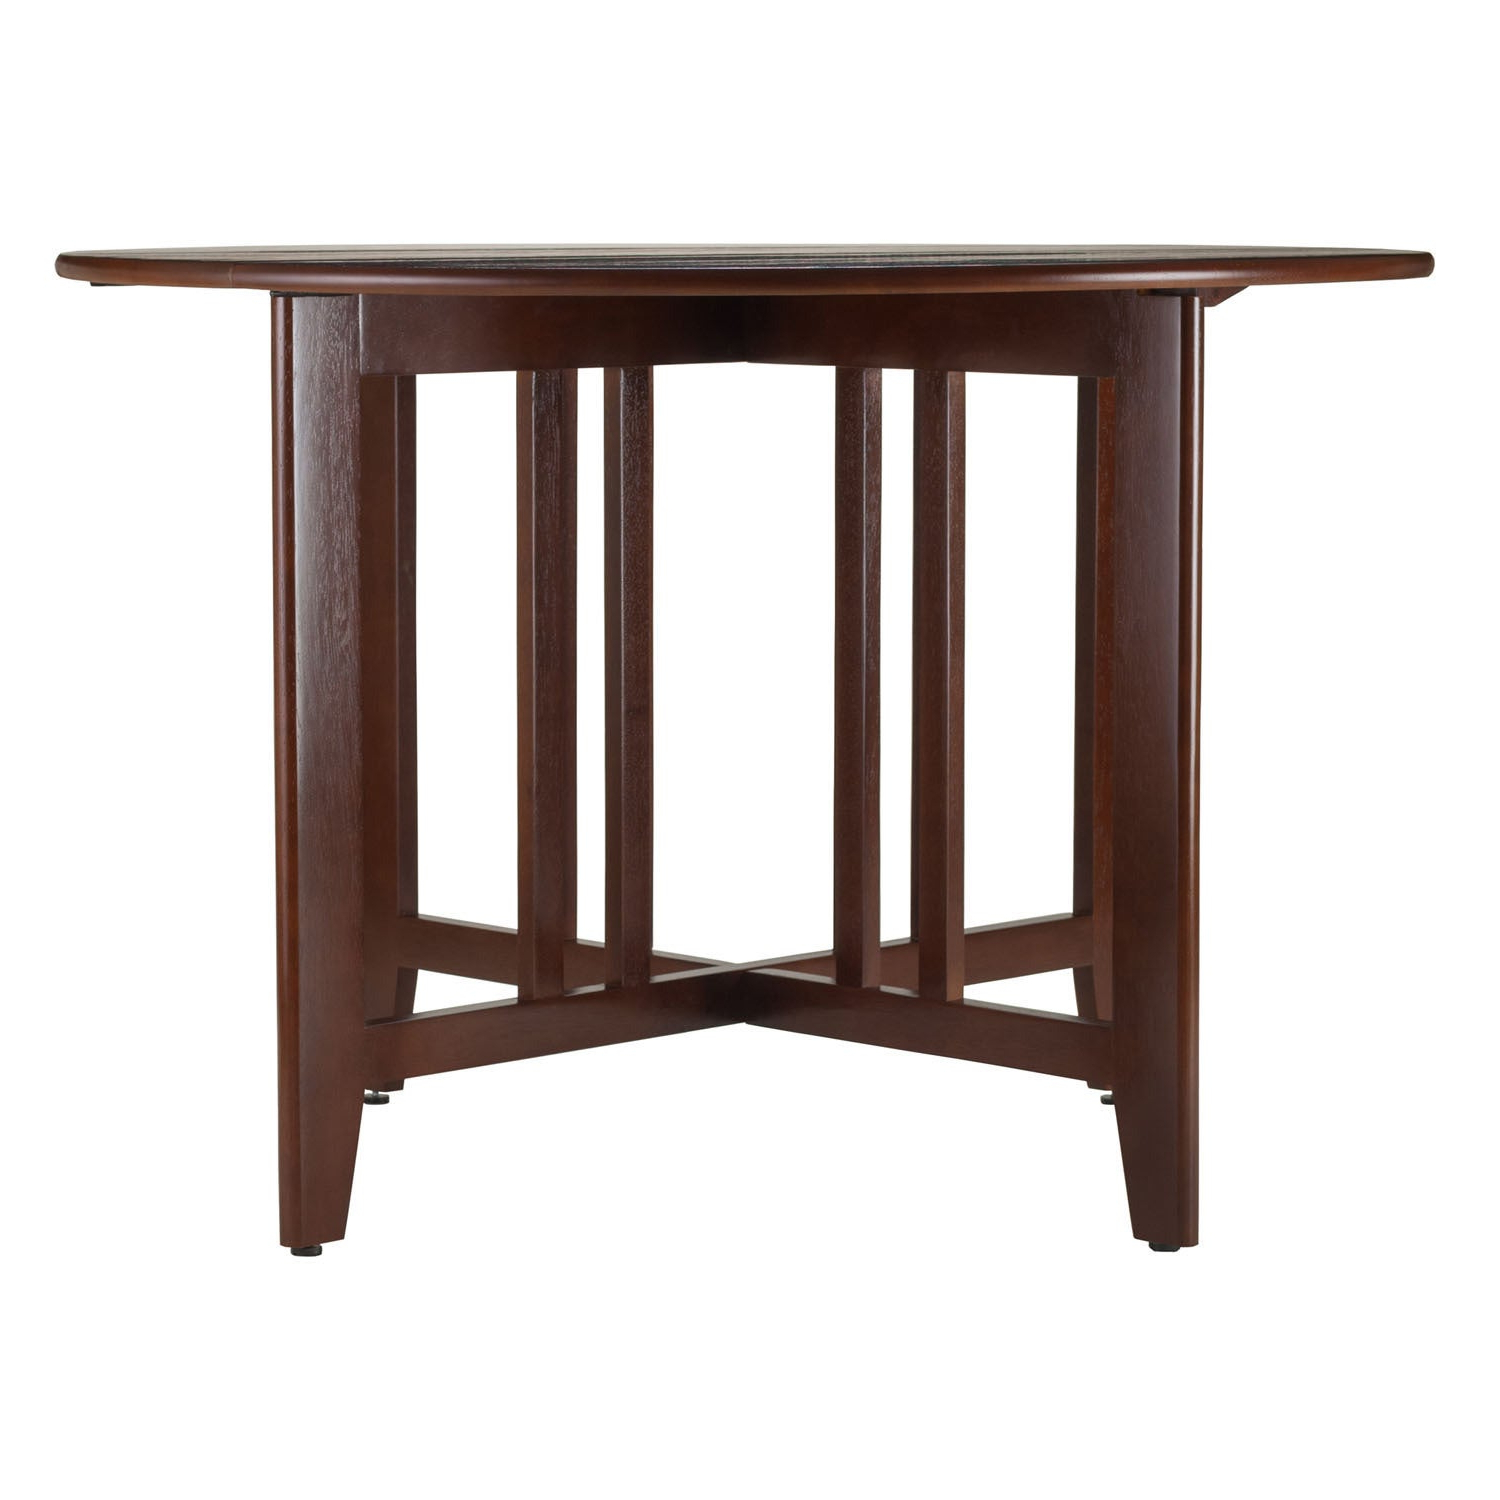 """Alamo Transitional 4 Seating Double Drop Leaf Round Casual Dining Tables With Preferred Alamo Double Drop Leaf Round 42"""" Table Mission – N/a (View 9 of 26)"""